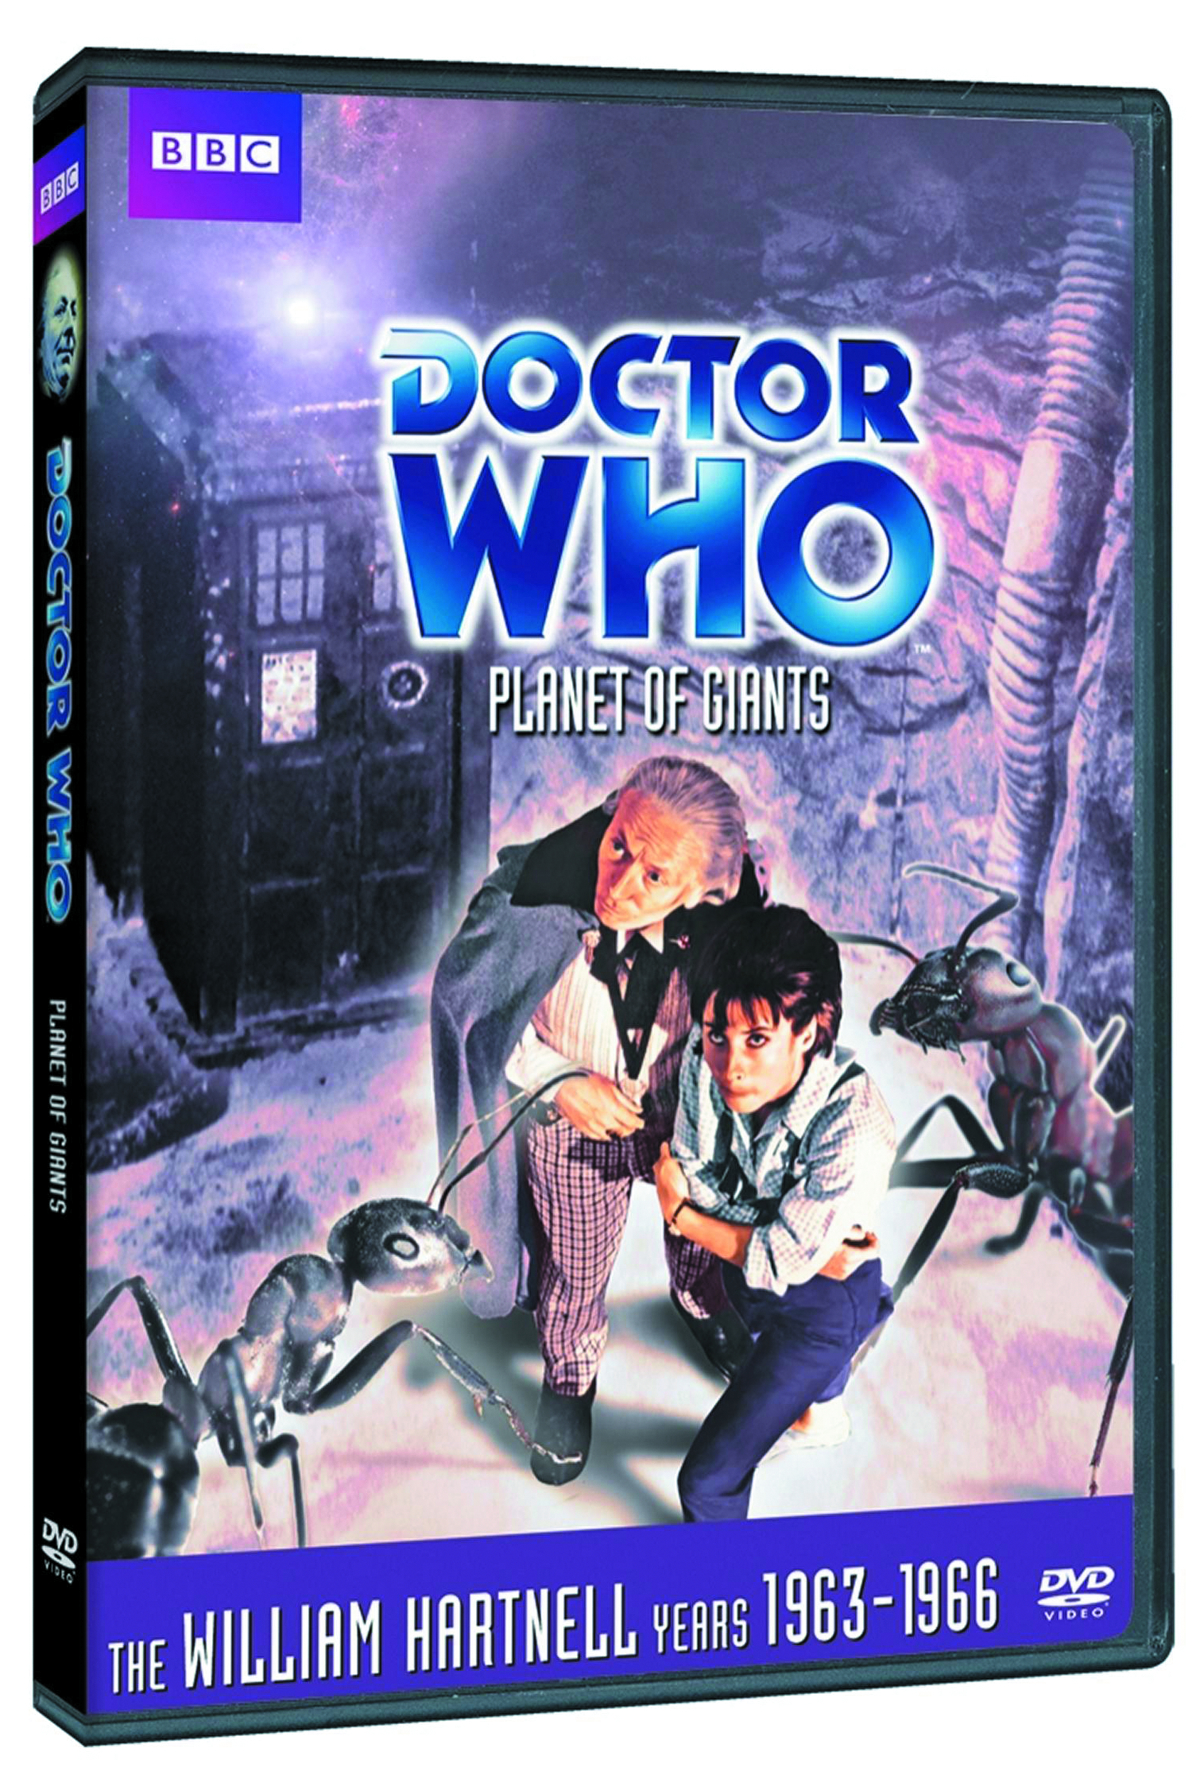 DOCTOR WHO PLANET OF GIANTS DVD